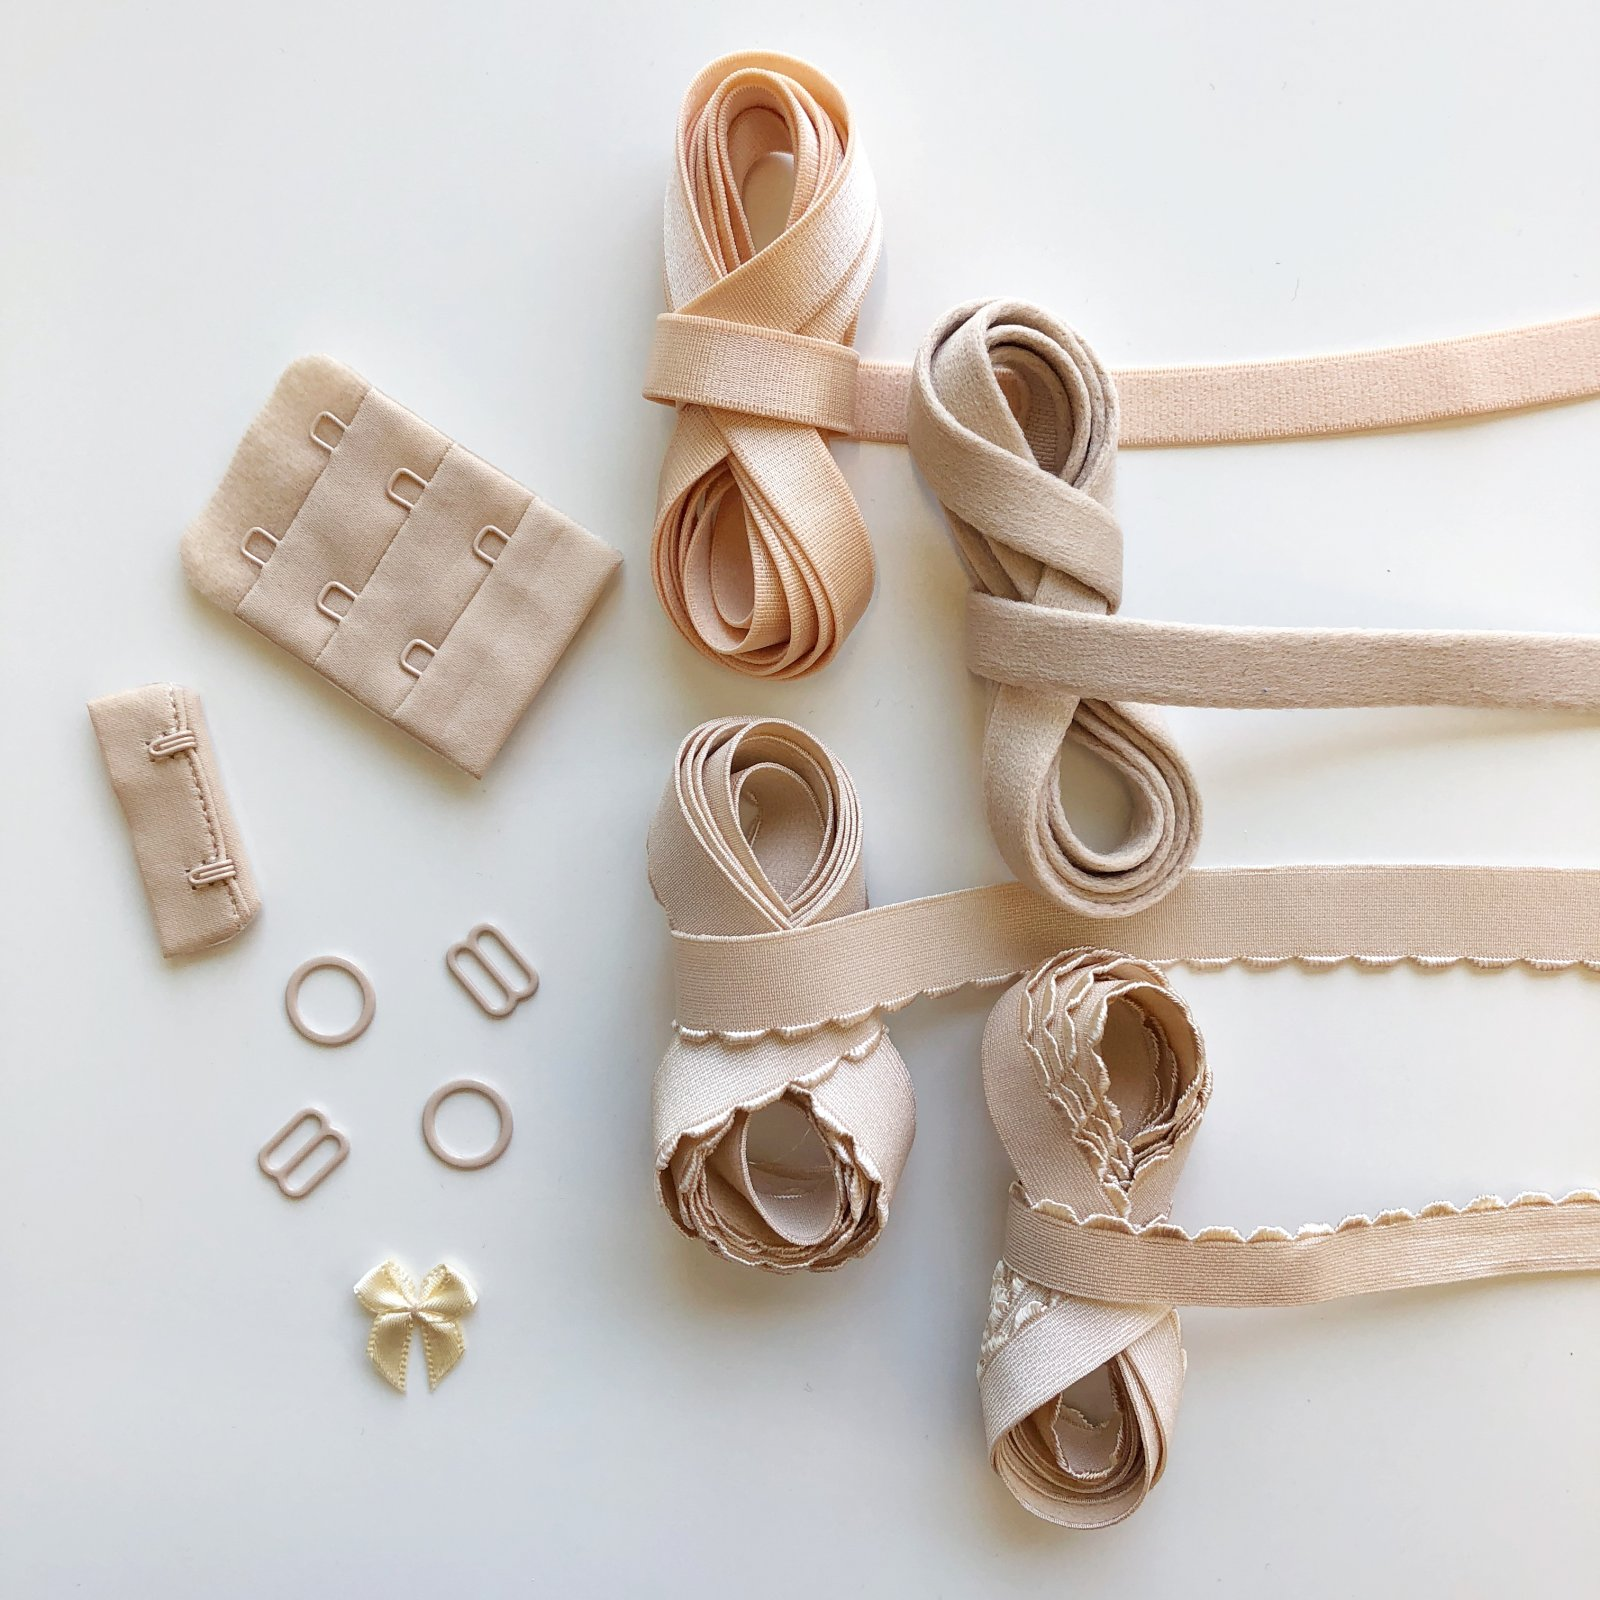 Bra Findings Kit - Beige